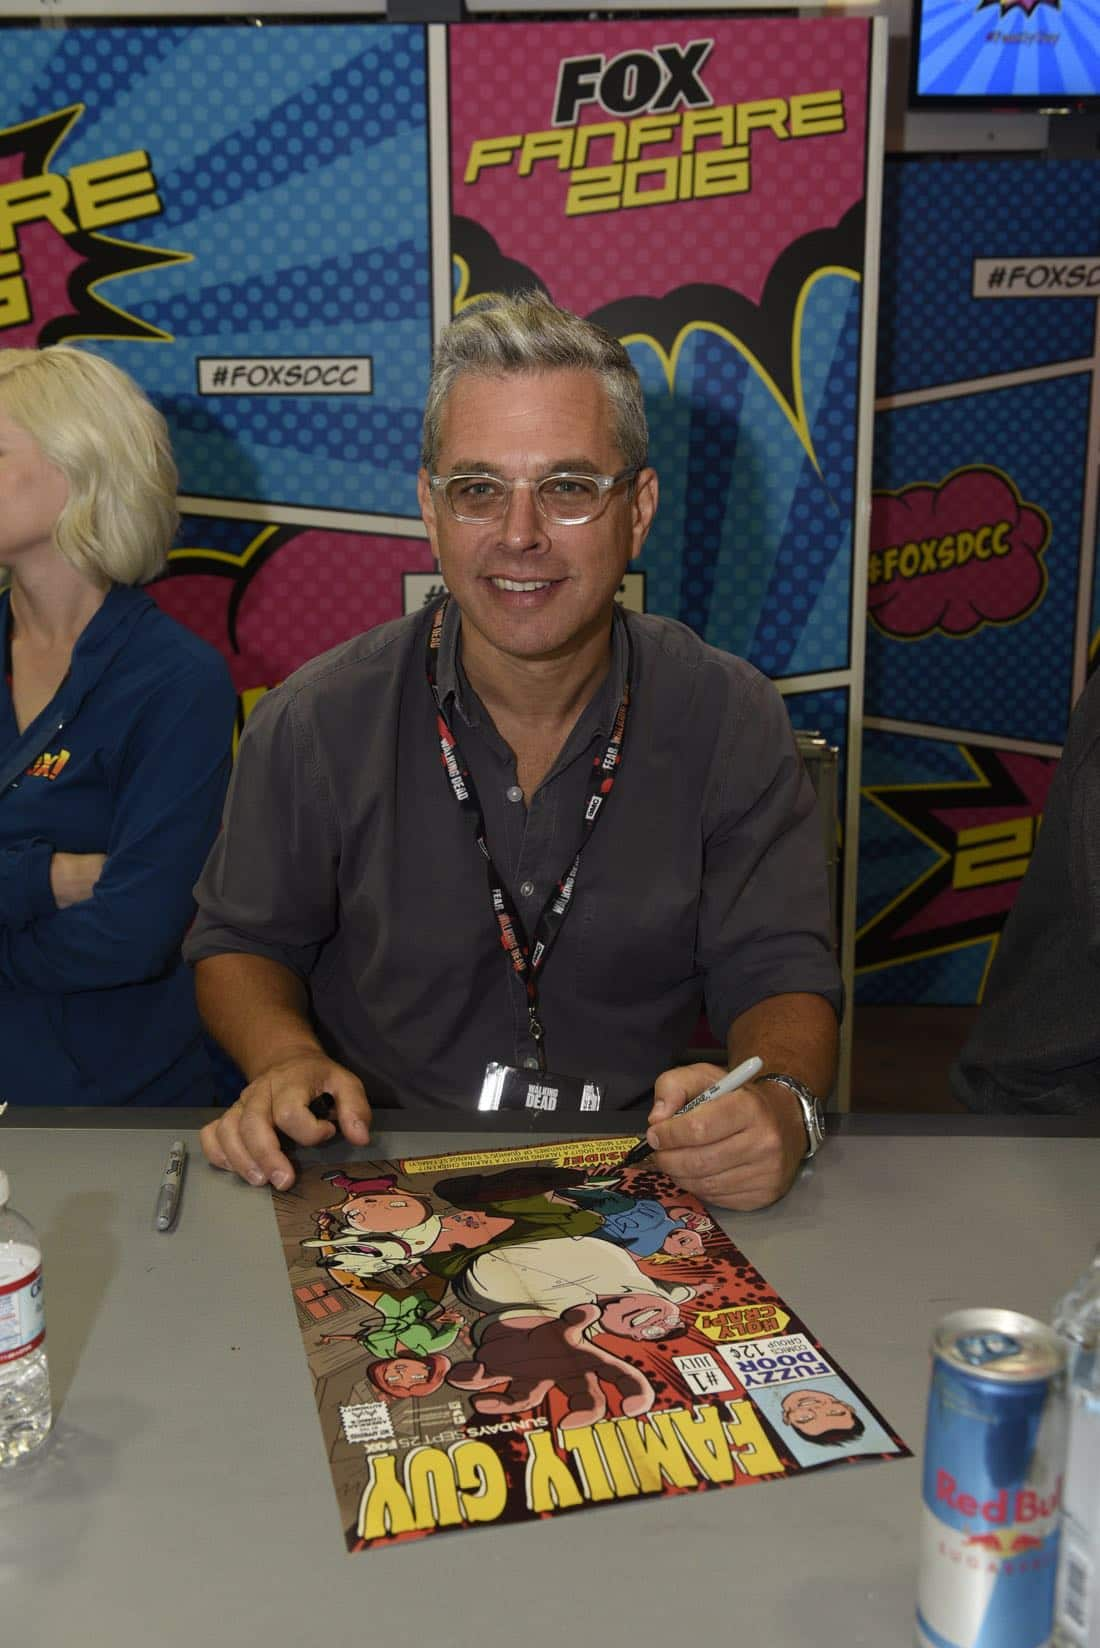 FOX FANFARE AT SAN DIEGO COMIC-CON © 2016: FAMILY GUY Executive Producer Rich Appel during FAMILY GUY booth signing on Saturday, July 23 at the FOX FANFARE AT SAN DIEGO COMIC-CON © 2016. CR: Alan Hess/FOX © 2016 FOX BROADCASTING